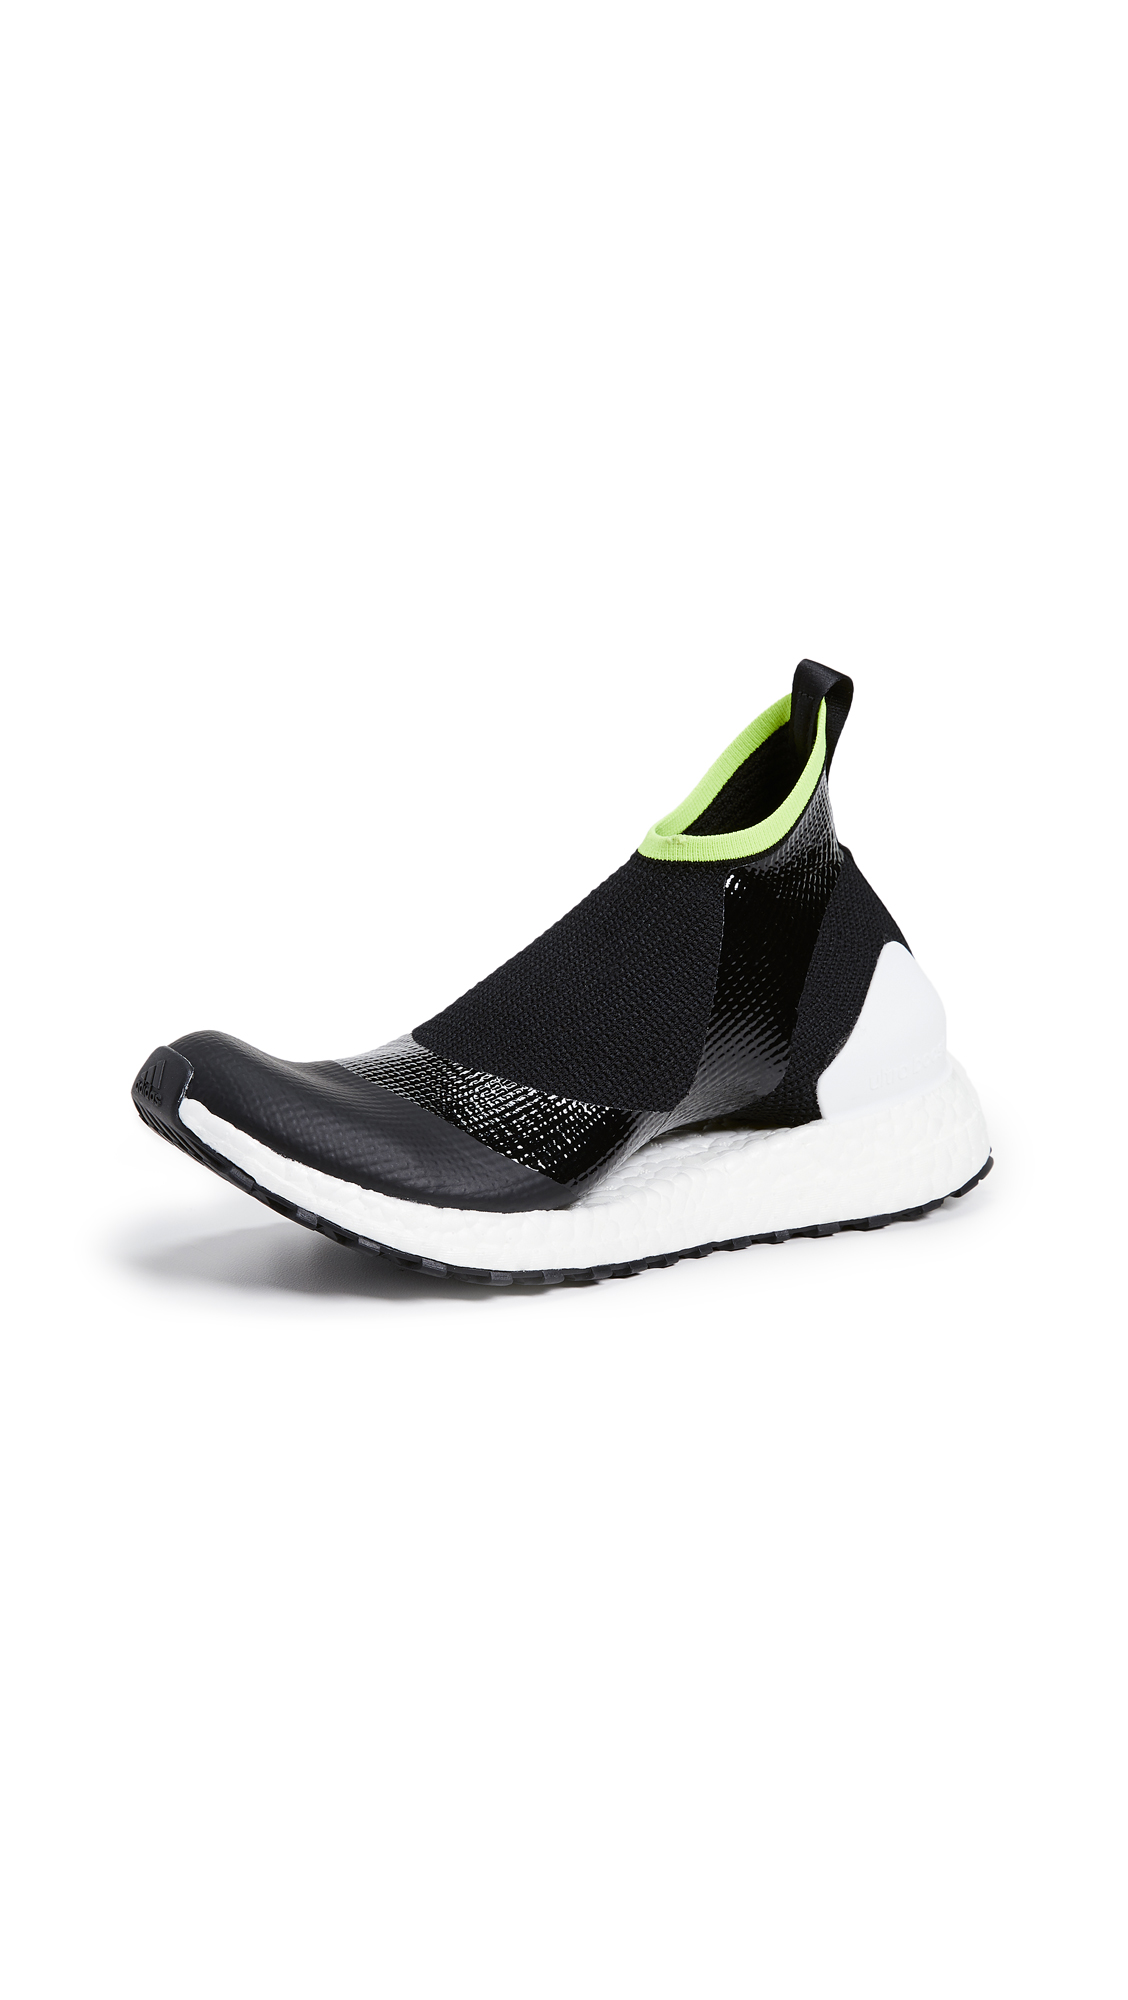 adidas by Stella McCartney UltraBOOST X ATR Sneakers